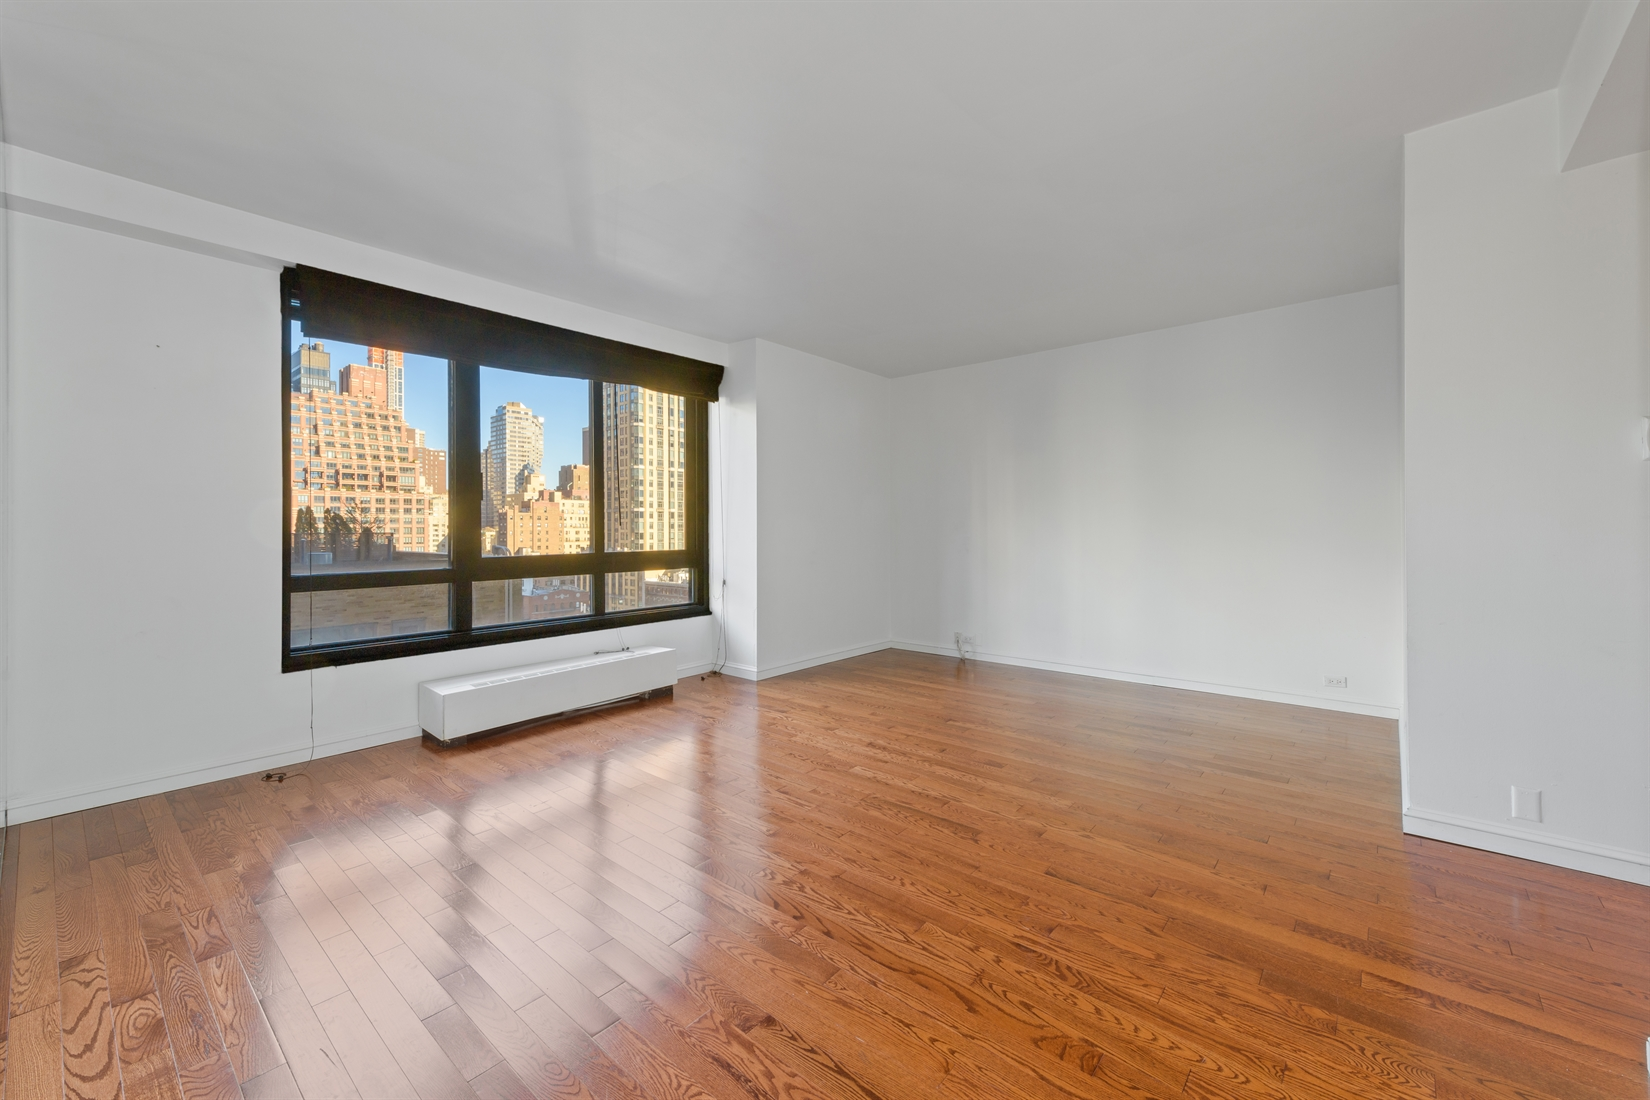 Spacious 1 bedroom, 1 bathroom with northern city views available for rent at 100 United Nations Plaza, one of Midtown East's premier white-glove condominium buildings.This bright and functional unit has beautiful wood flooring, great closet space and an updated kitchen. The extra-large living room has a separate alcove that is ideal for use as a dining area or work space, while over-sized north-facing windows highlight open skyline views. The updated galley kitchen has marbled floor and backsplash tile, a 5-burner gas range from Samsung, Haier stainless steel fridge and a full size dishwasher. The bedroom is also north-facing and will comfortably accommodate a king-size bed, and the en suite marble bathroom has a jacuzzi bathtub. Additional features include 3 extra-large closets, 9' ceilings, and central heat and A/C.Located on East 48th Street and 1st Avenue, 100 United Nations Plaza is a full service, white-glove condominium in Manhattan's Turtle Bay neighborhood. Residents are greeted with beautifully landscaped gardens and waterfalls and this impeccably run building offers a 24-hour doorman, valet and concierge service, on-site management office, renovated lobby and resident's lounge, common laundry room, fitness center and direct access to a 24-hour attended parking garage. Conveniently located to transportation and many great neighborhood shops and restaurants. Condominium application required. Showing by appointment only.